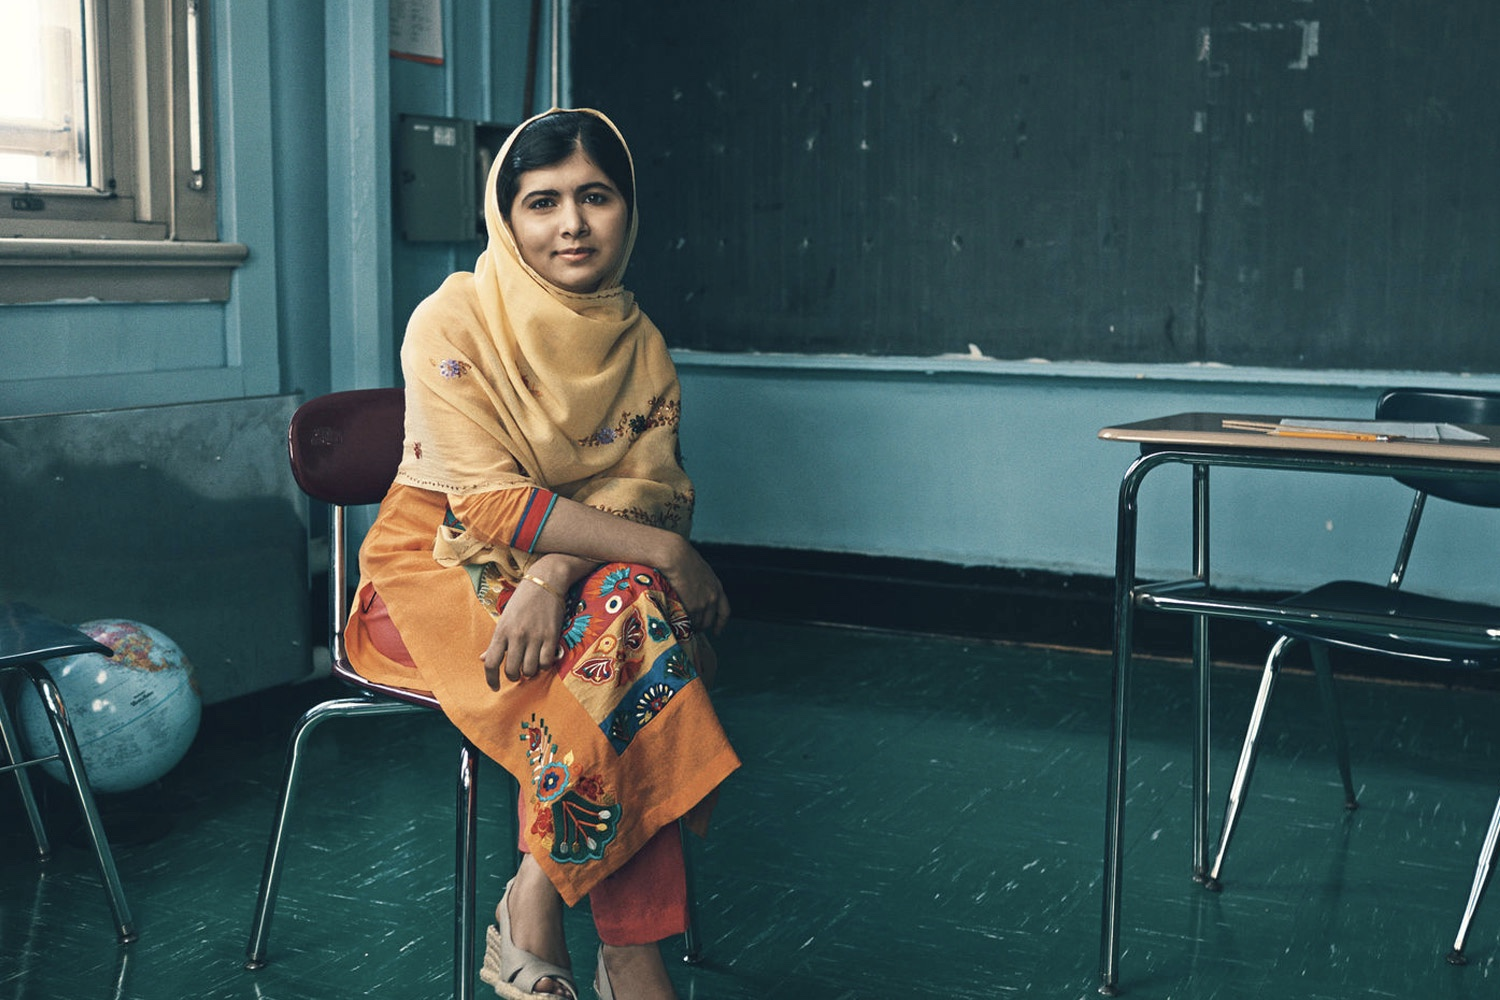 Malala Yousafzai goes to Pakistan,Malala Yousafzai returns home,Malala Yousafzai,News,Newsfeeds24.com,Newsfeeds24,